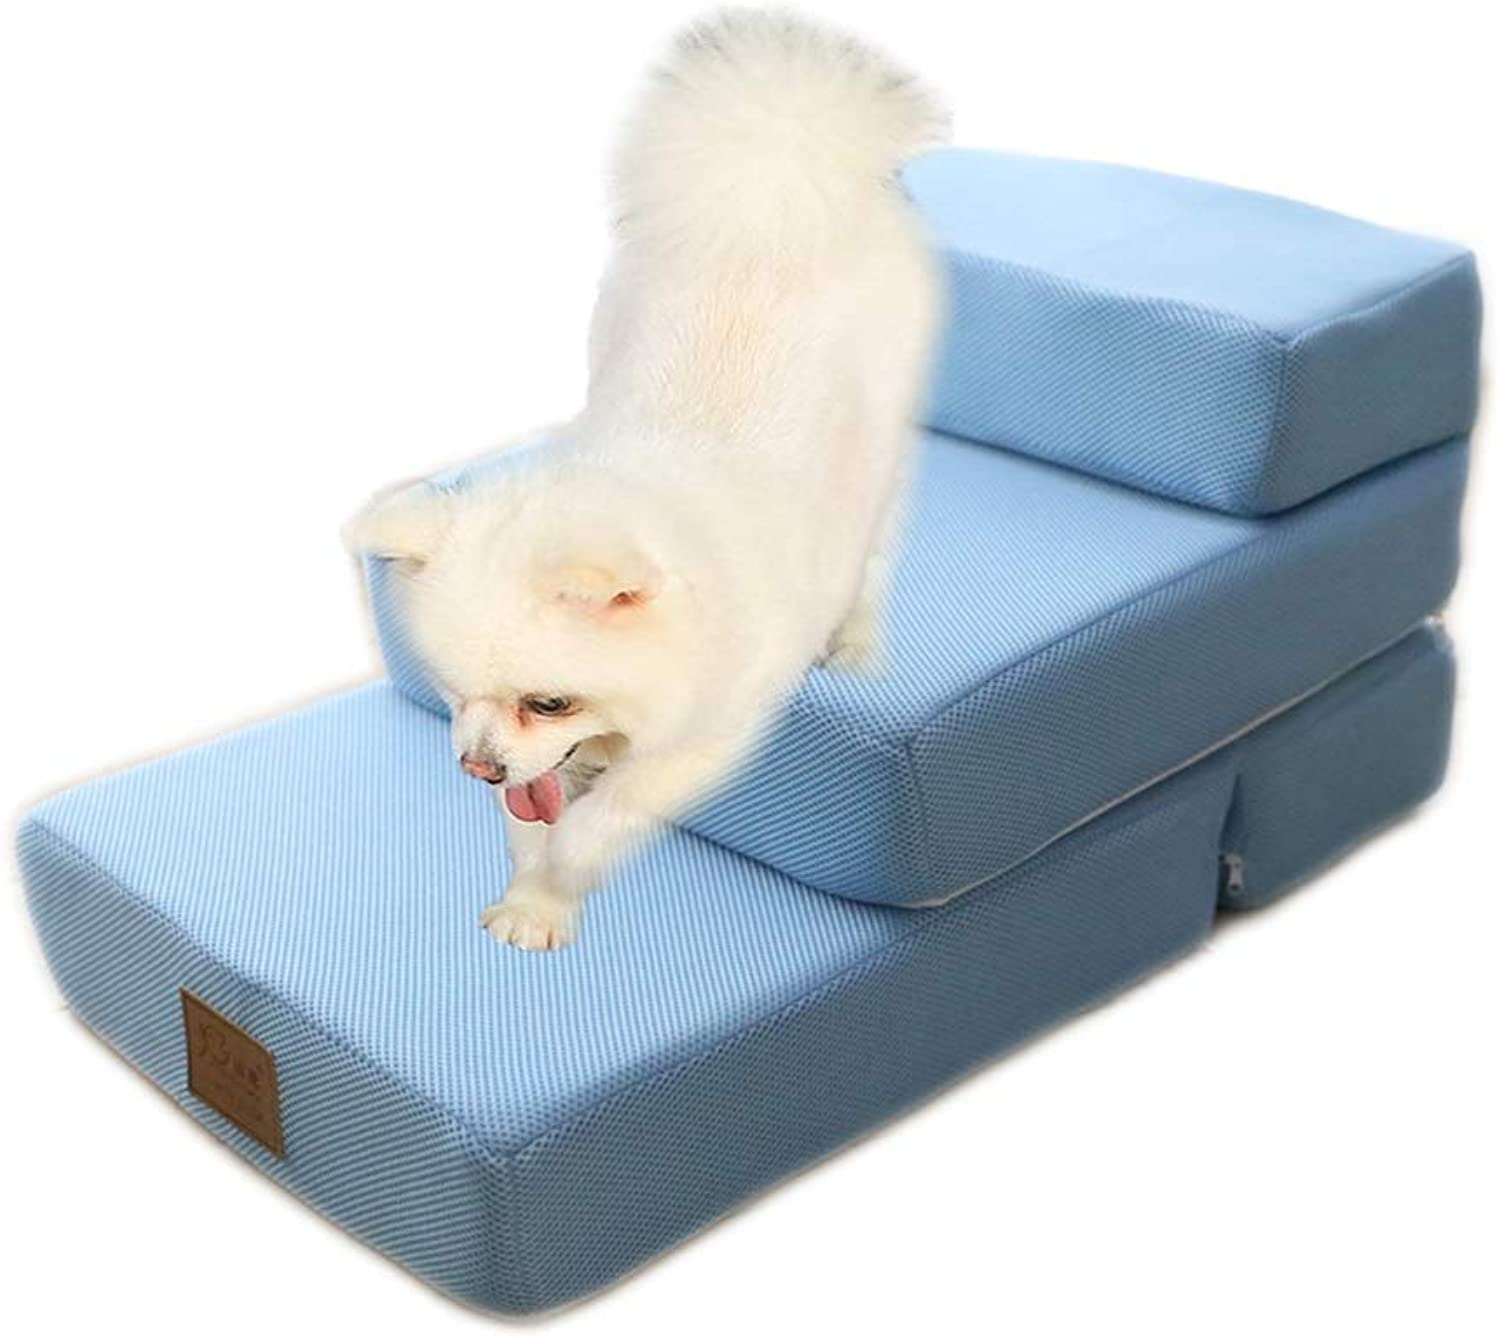 Pet Stairs Dog Bed Ladder Cat Ramp  2 3 Tier Foldable for Tall Sofa,Removable Washable Cover (color   bluee, Size   3STEP)